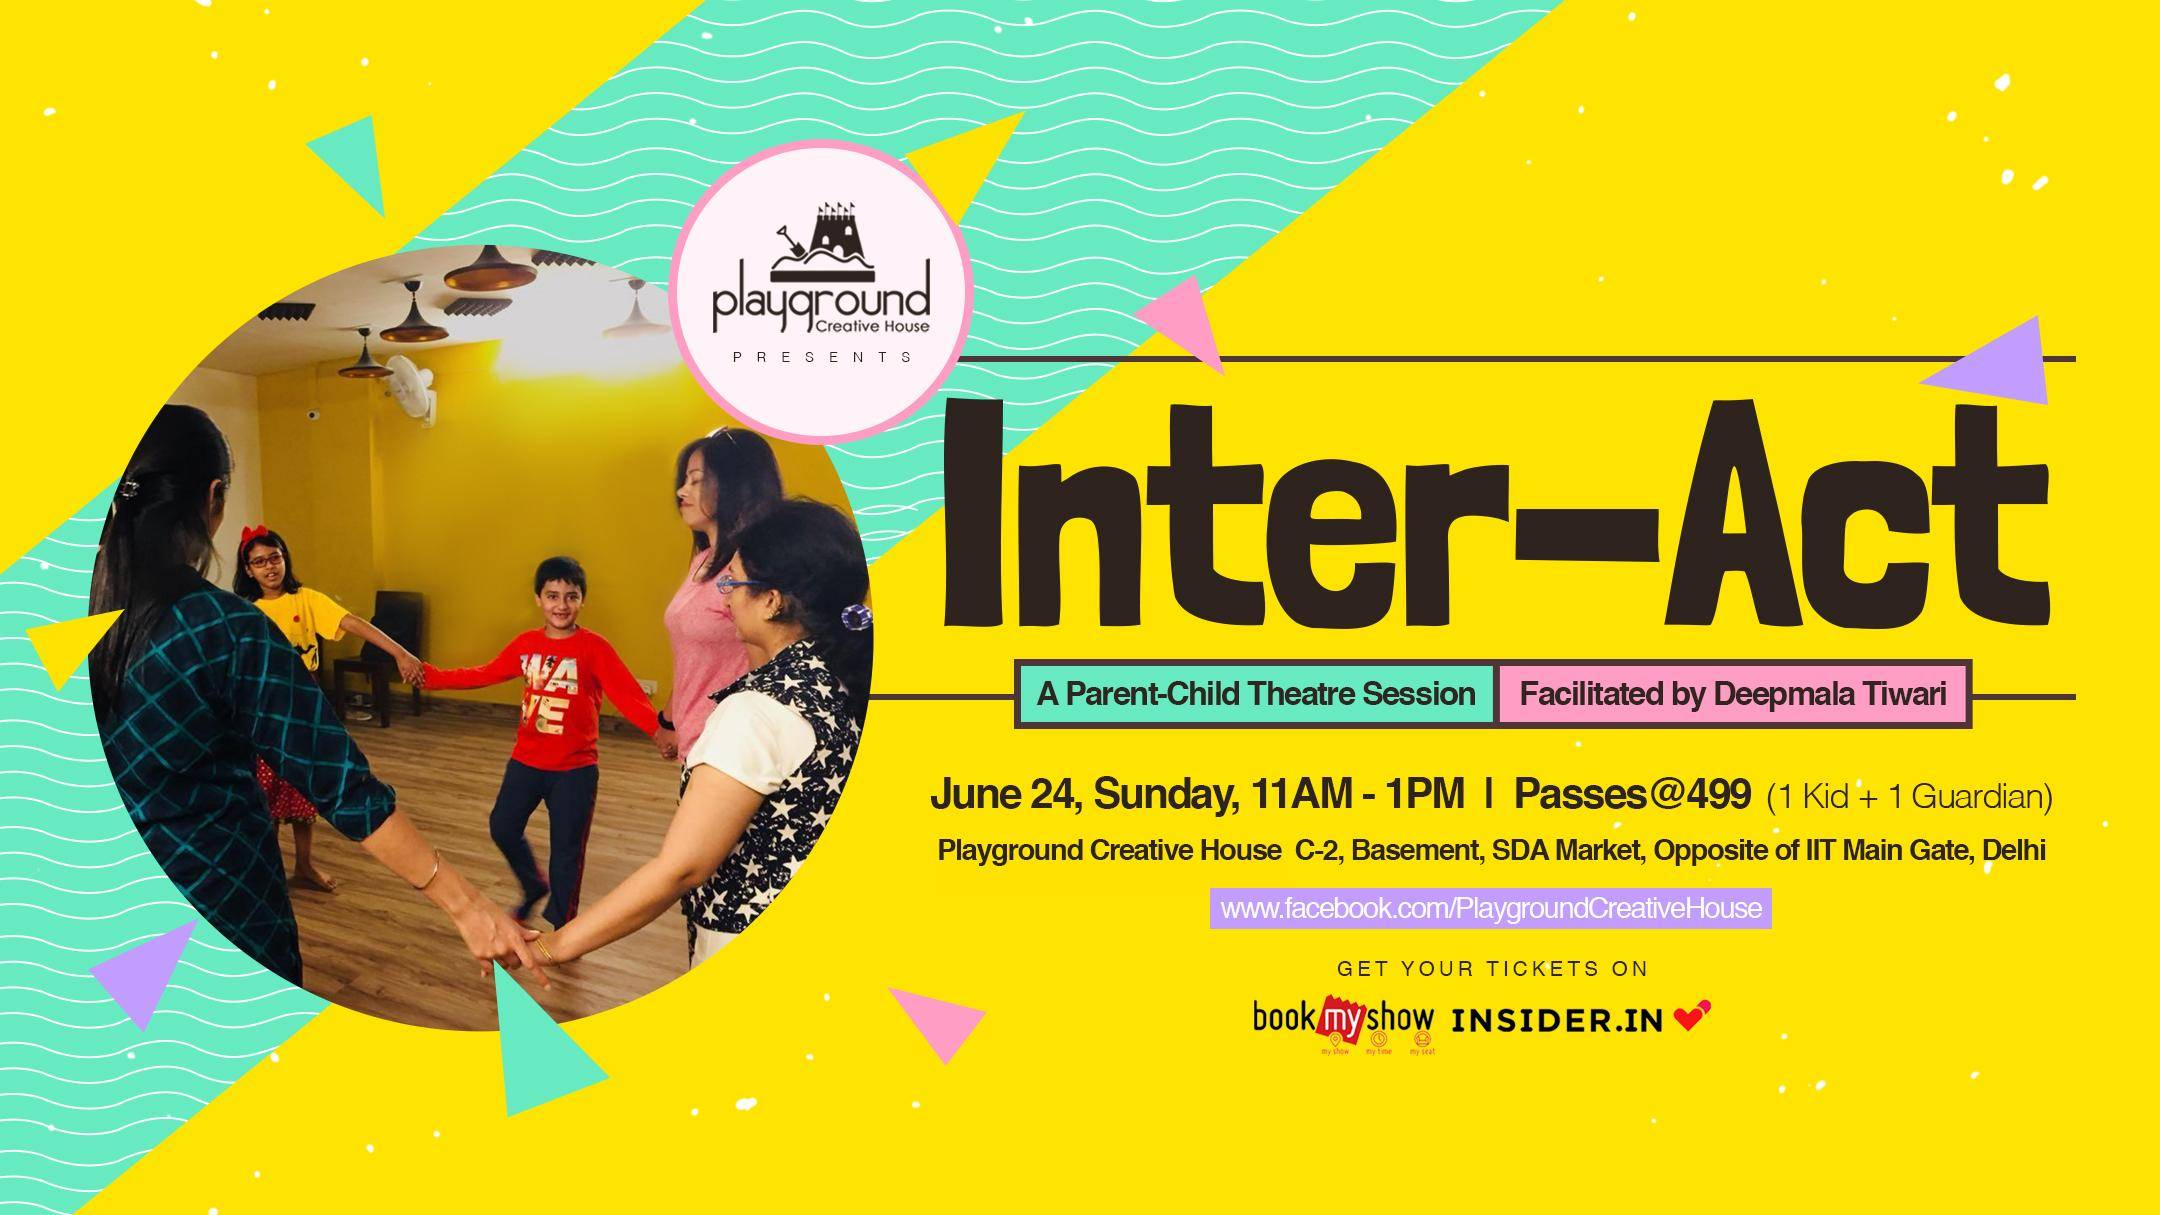 Inter-Act: A Parent-Child Theatre Session - With Facilitated by Deepmala Tiwari